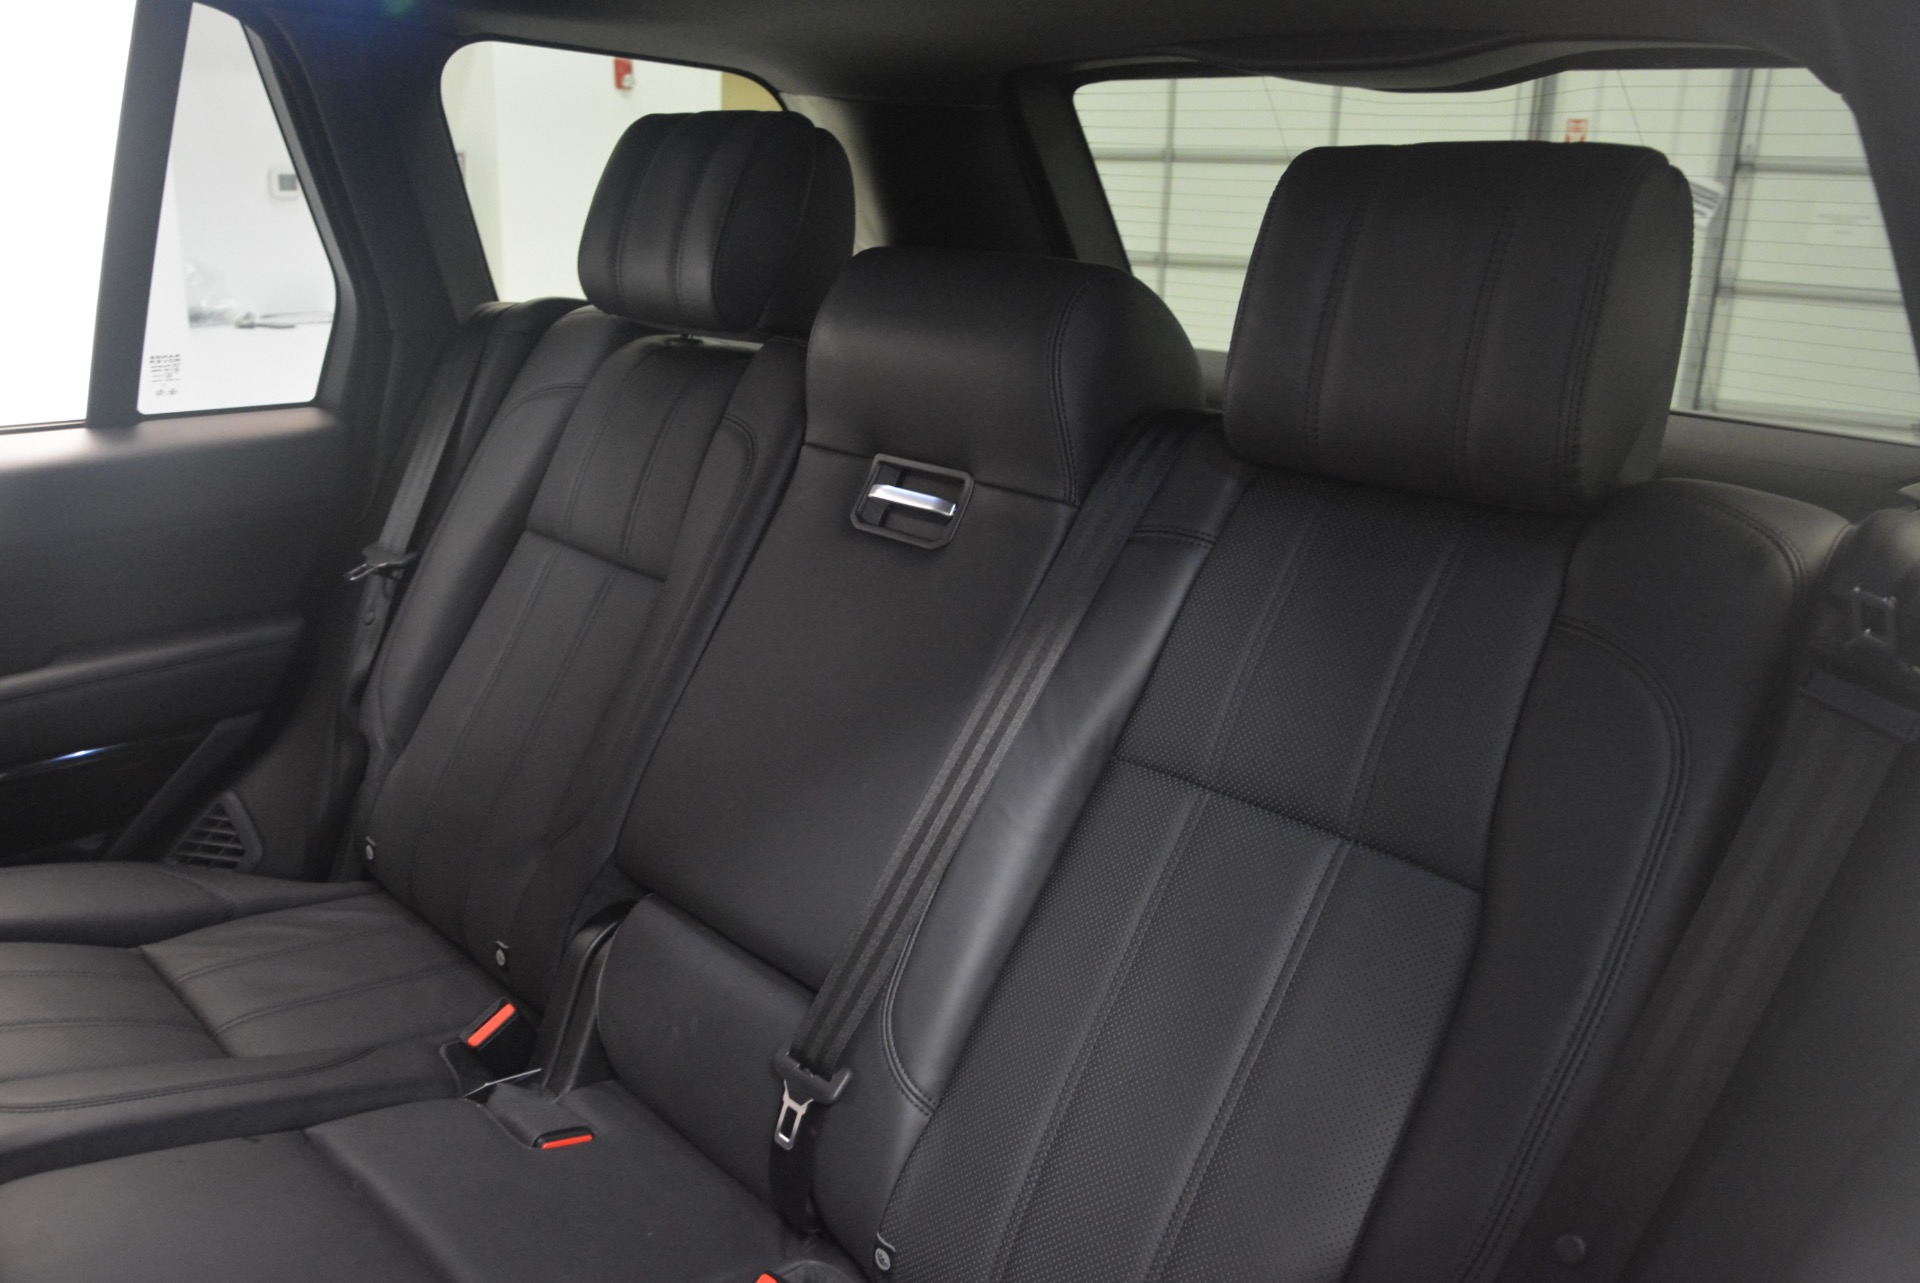 Used 2015 Land Rover Range Rover Supercharged For Sale In Greenwich, CT 1292_p25